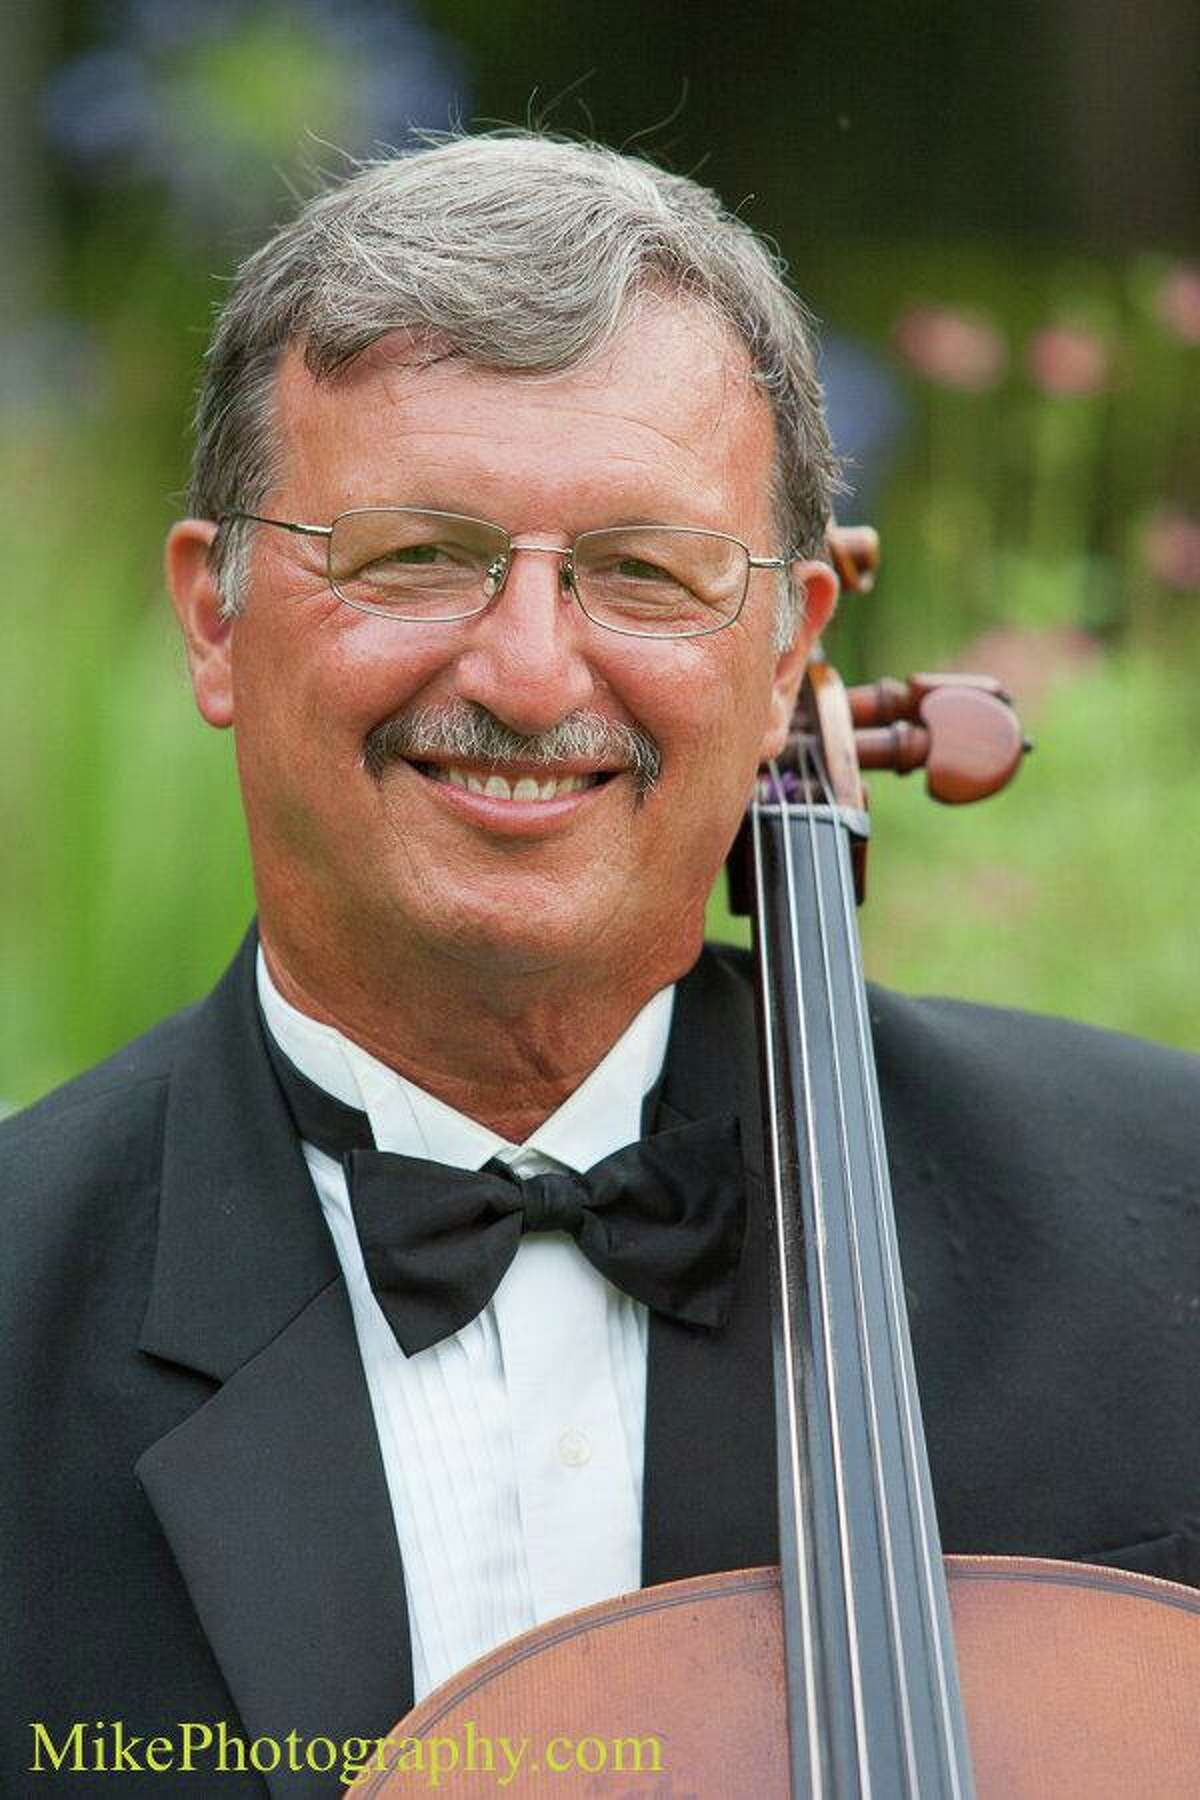 Former Pasadena ISD orchestra director Alex Pancheri is being remembered for his keen interest in encouraging his students.